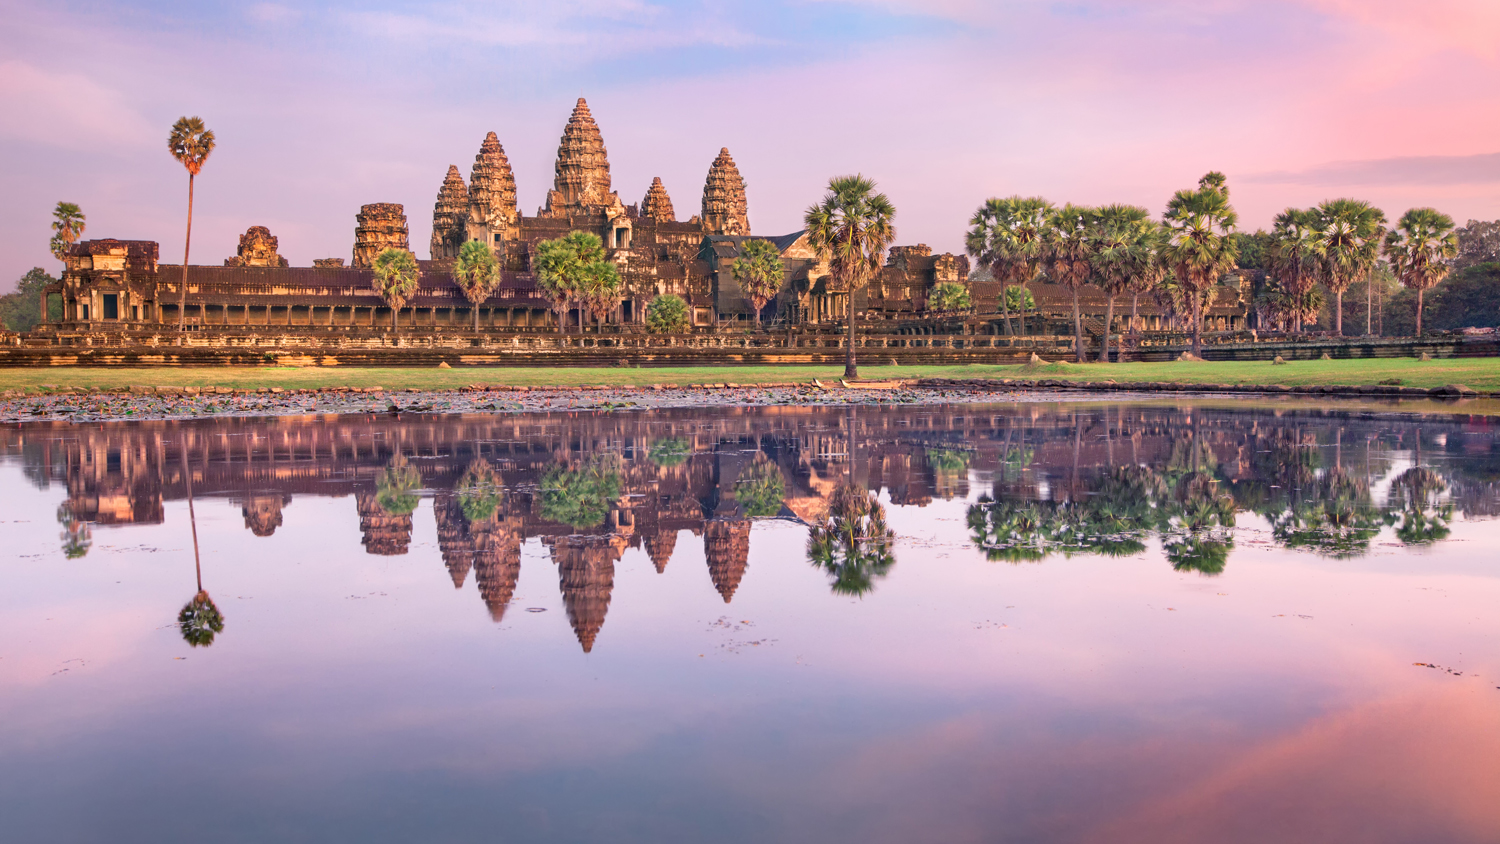 Angkor Wat temple at dramatic sunrise reflecting in water. (Insight Vacations)